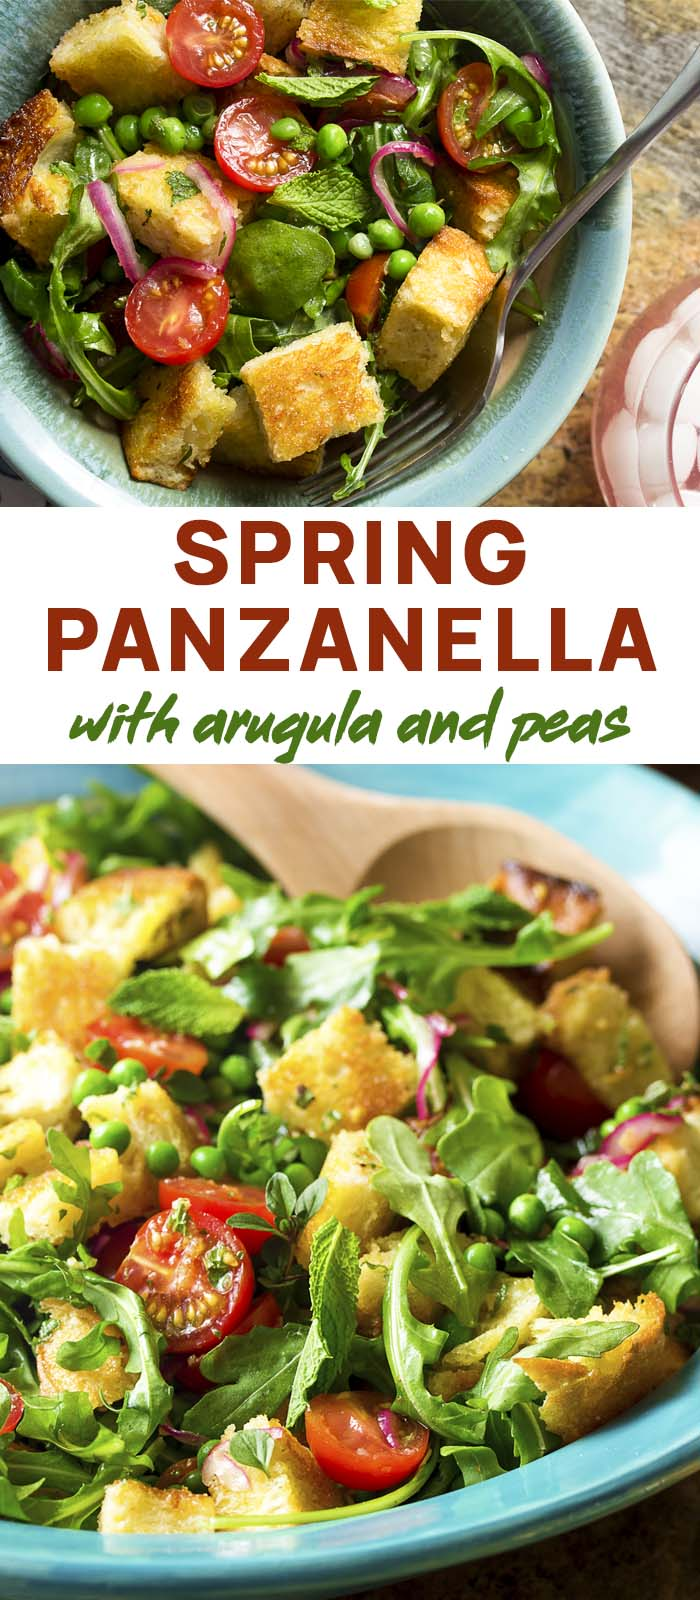 Bread salad in a serving bowl and dinner bowl with text overlay - Spring Panzanella